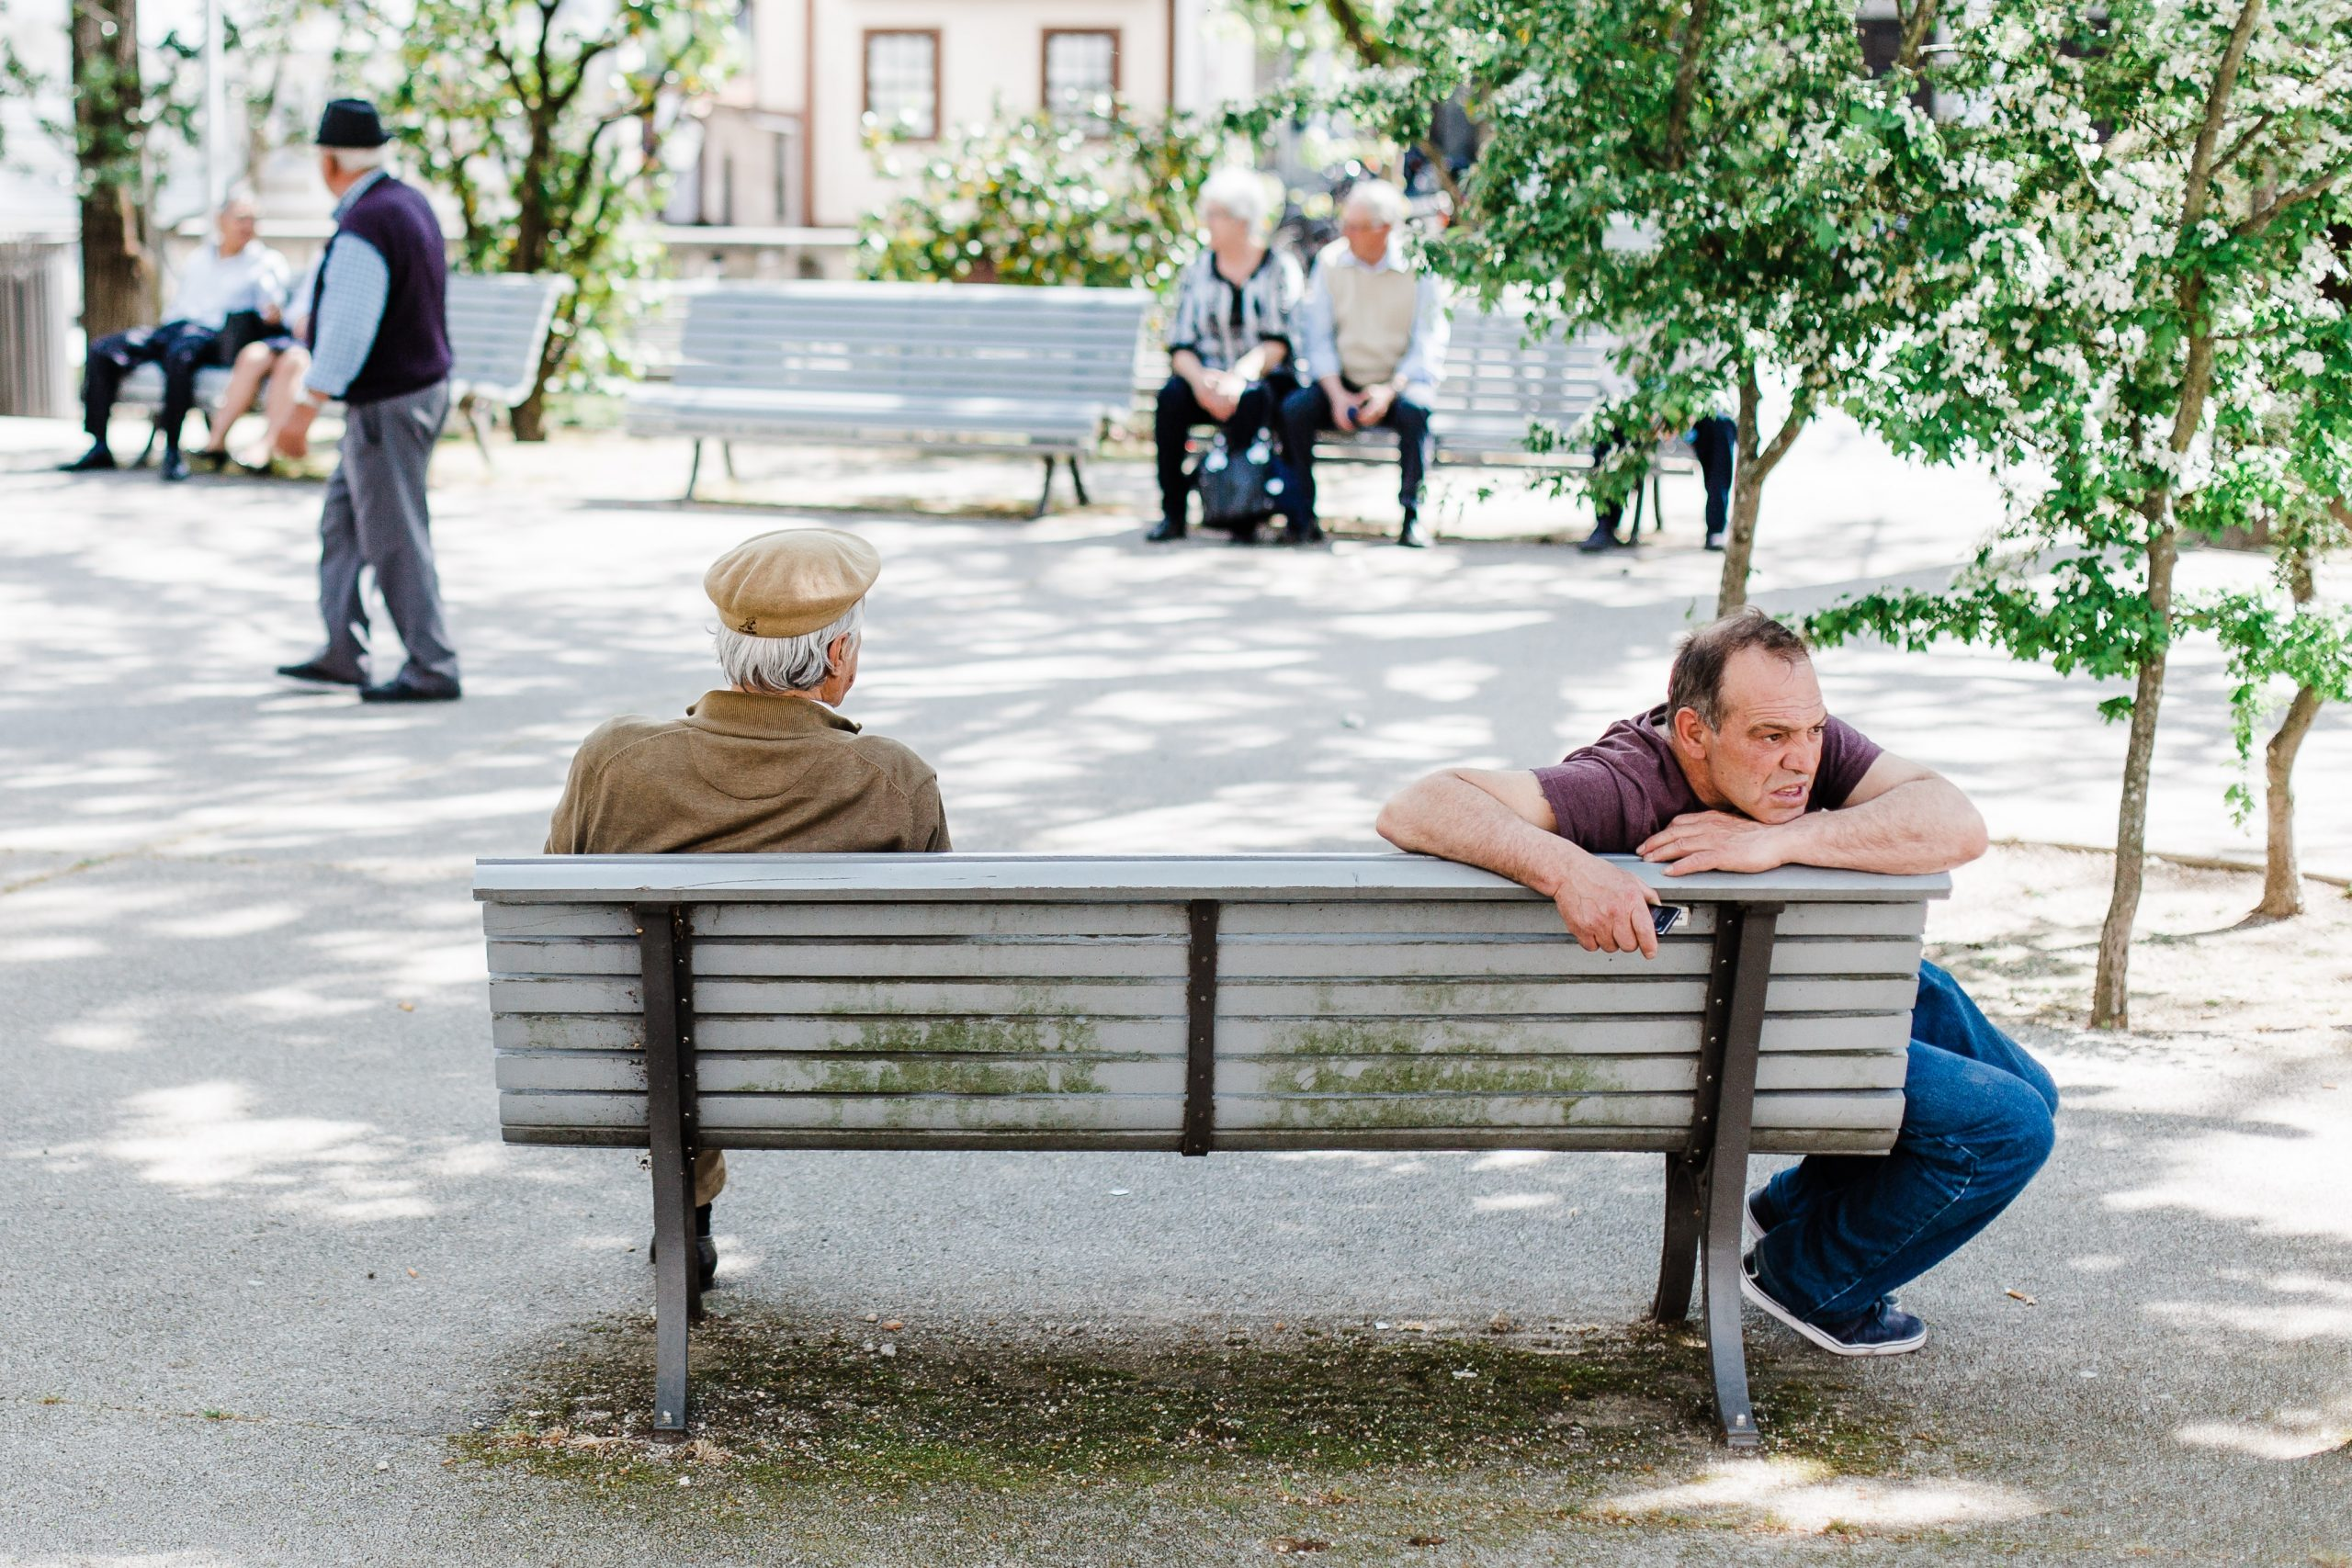 Two elderly men sit on a bench in Portugal not speaking and isolated from the other side of the park